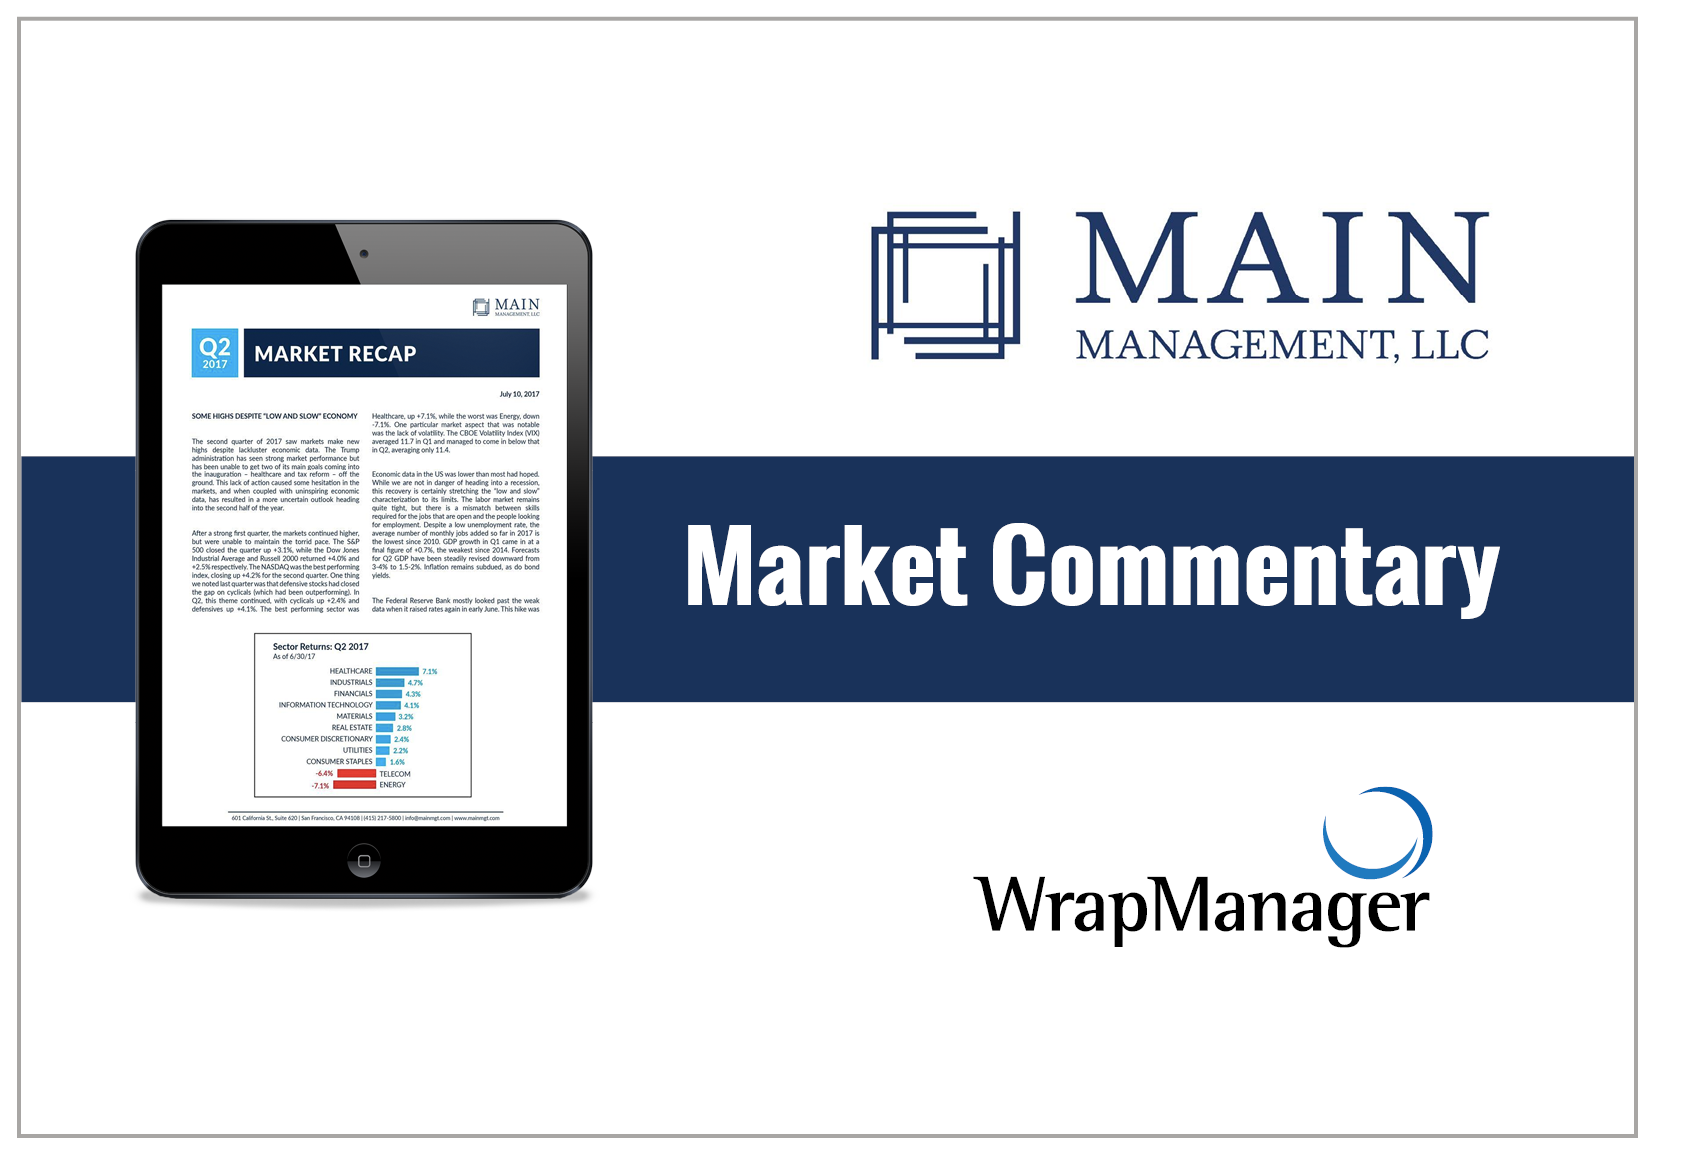 Main Management Reviews Market Performance in 2Q 2017